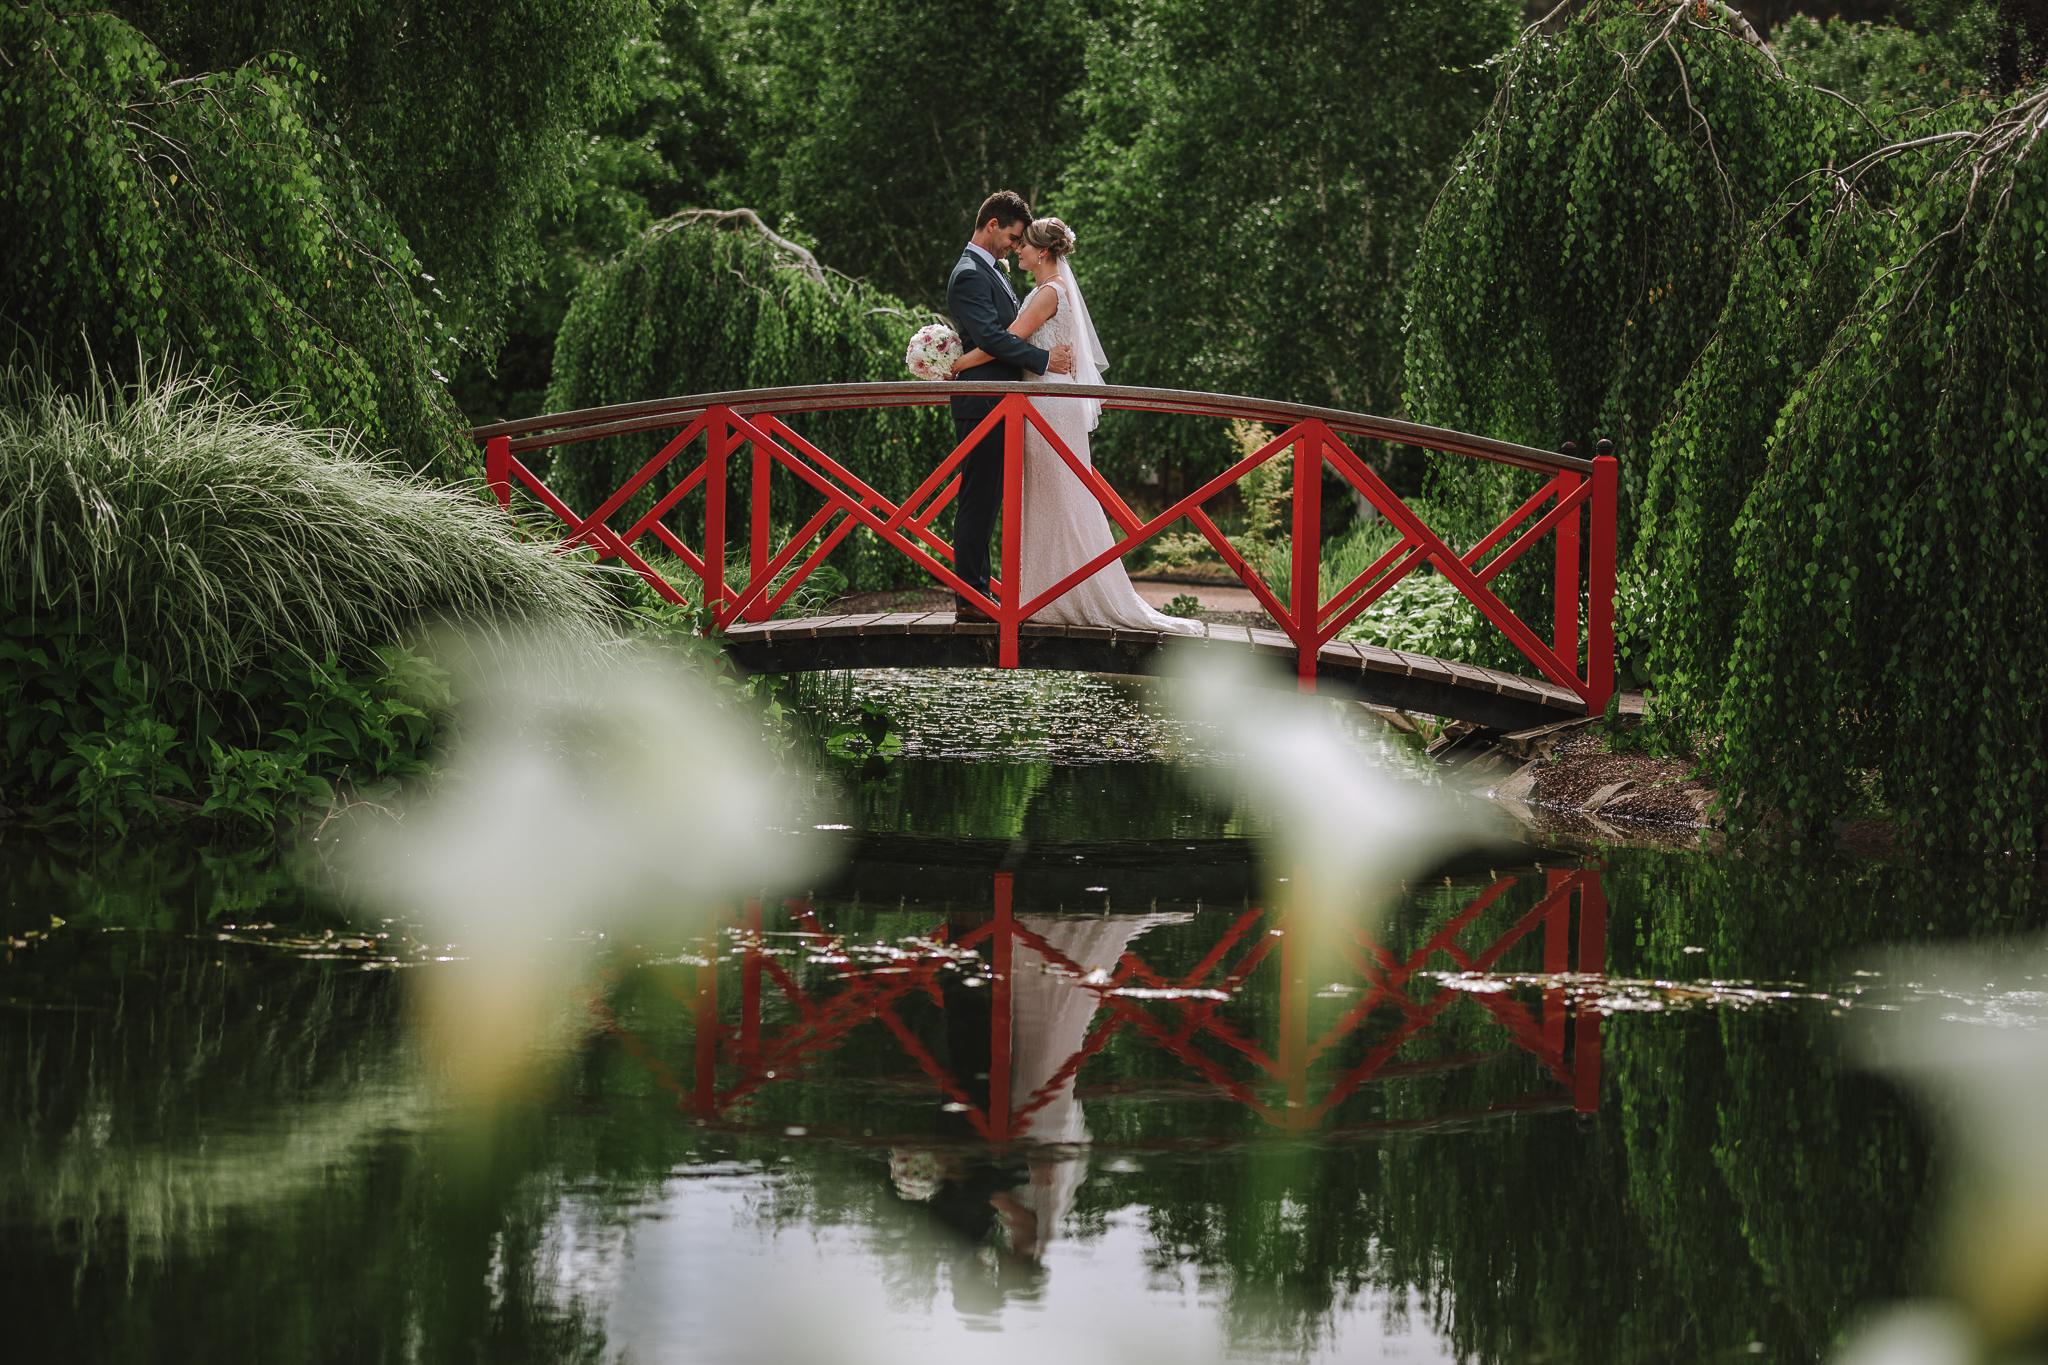 Beautifull Wedding Photographs in the Watergarden